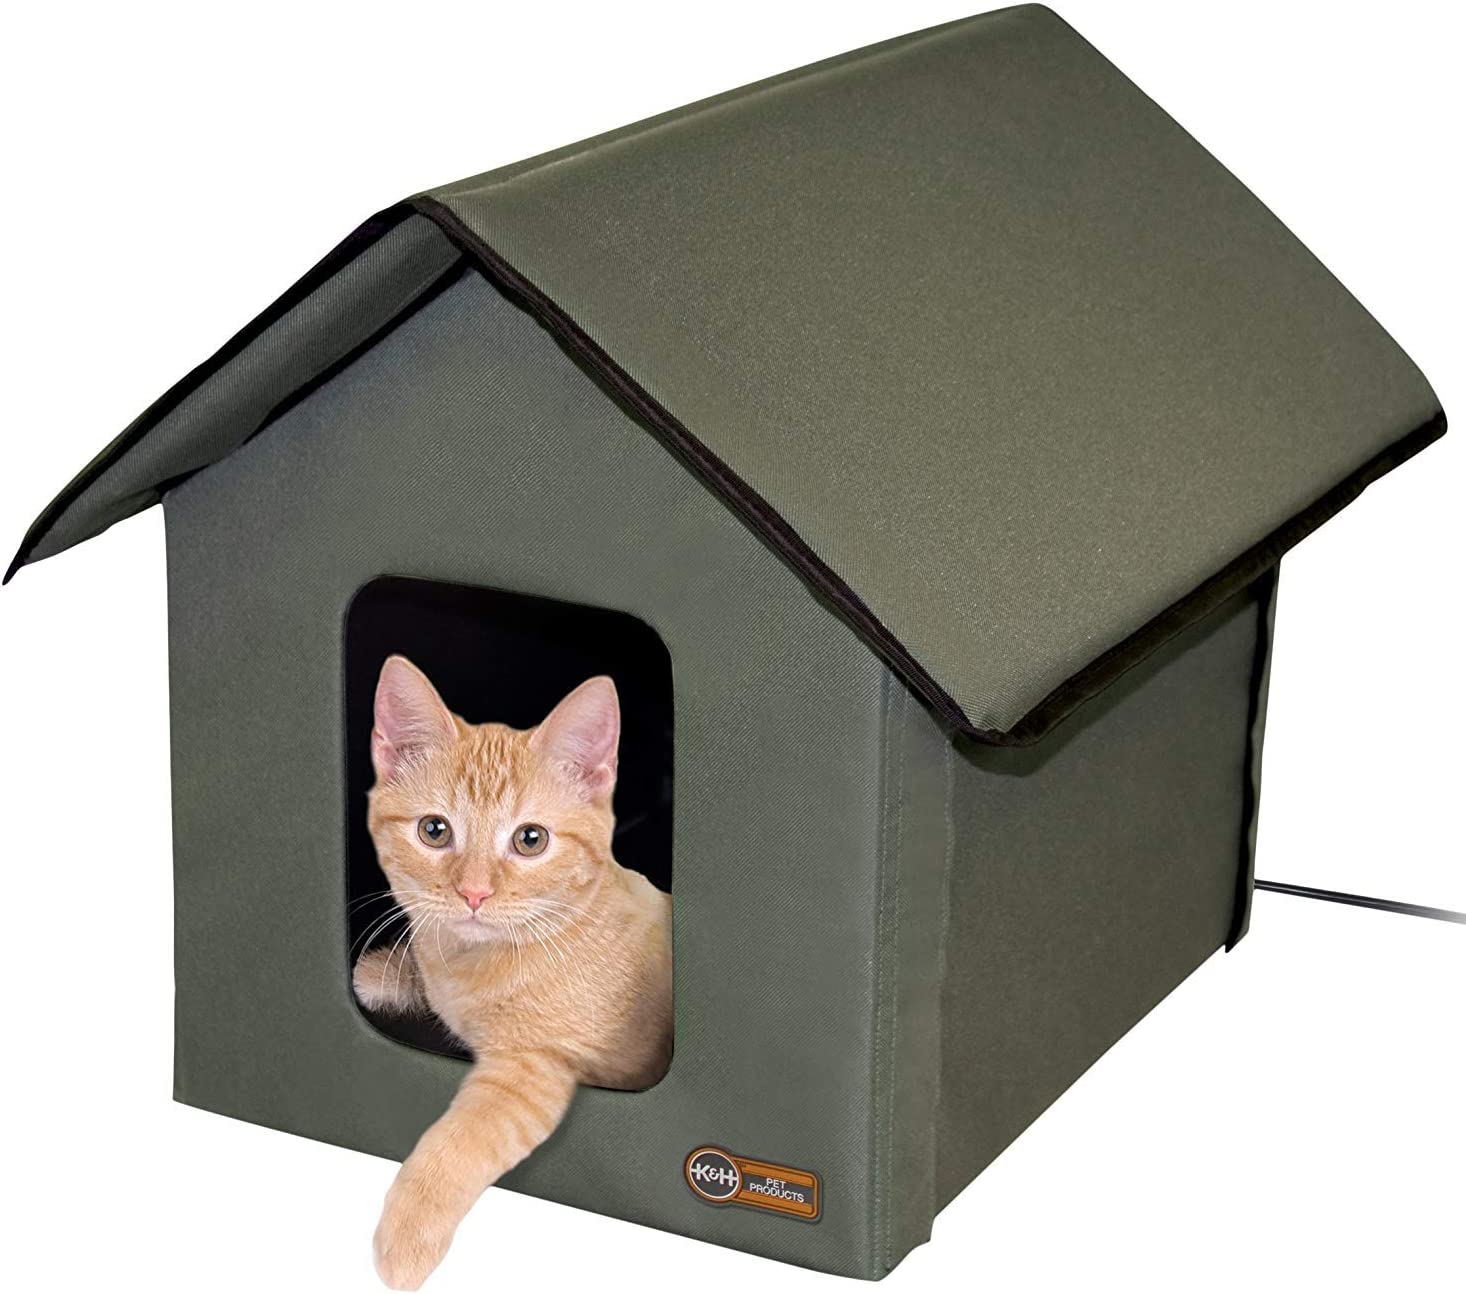 K&H Pet Products Outdoor Kitty House, Insulated Cat Shelter (Heated or Unheated)